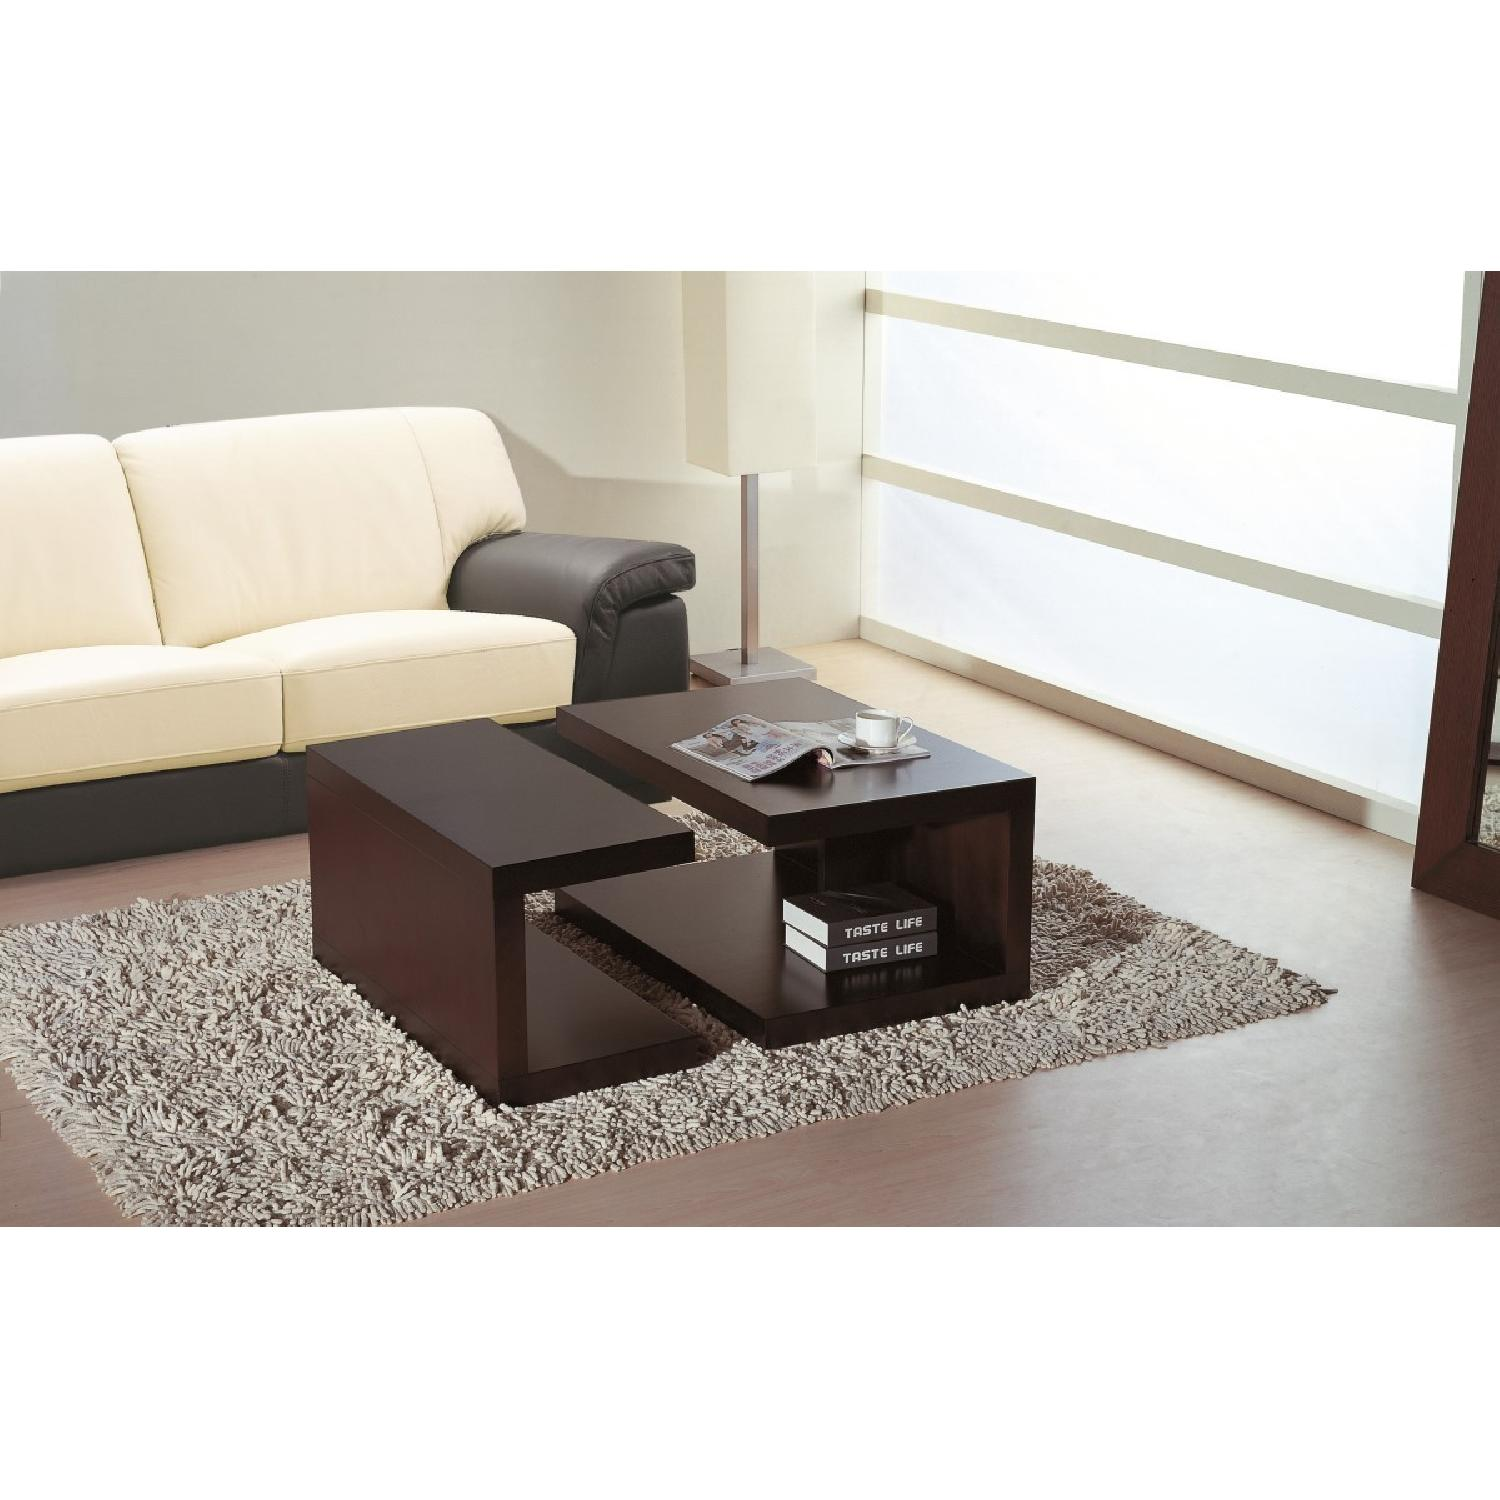 Contemporary 2-Part Coffee Table Set in Wenge Finish-2